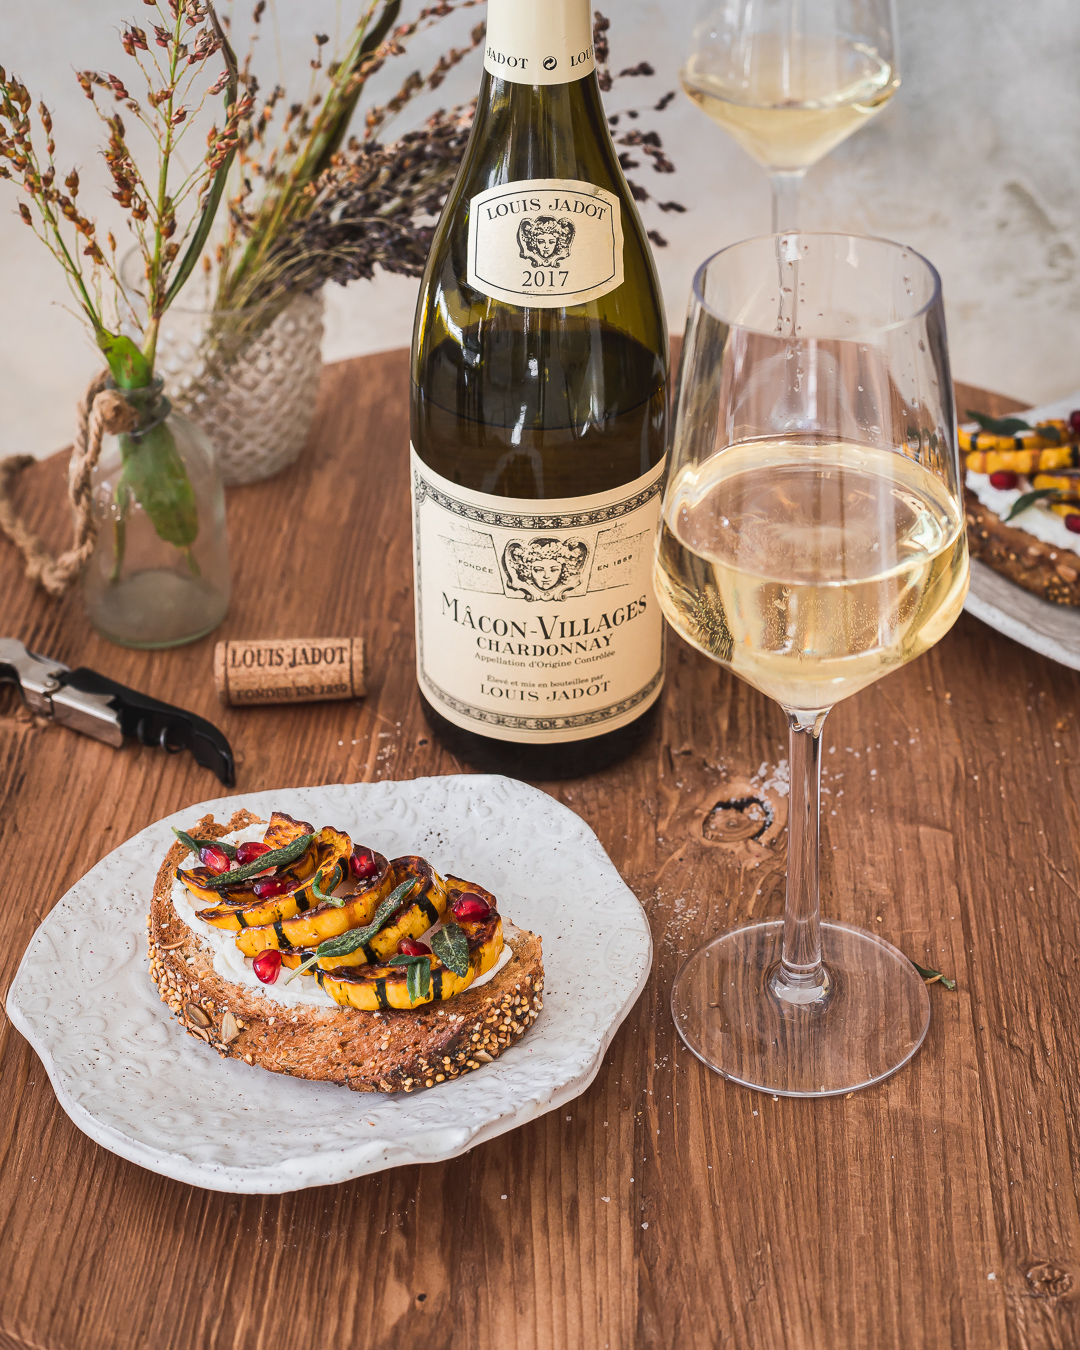 roasted delicata squash and goat cheese tartine on a white Porcelaine plate with a glass of chardonnay on the side